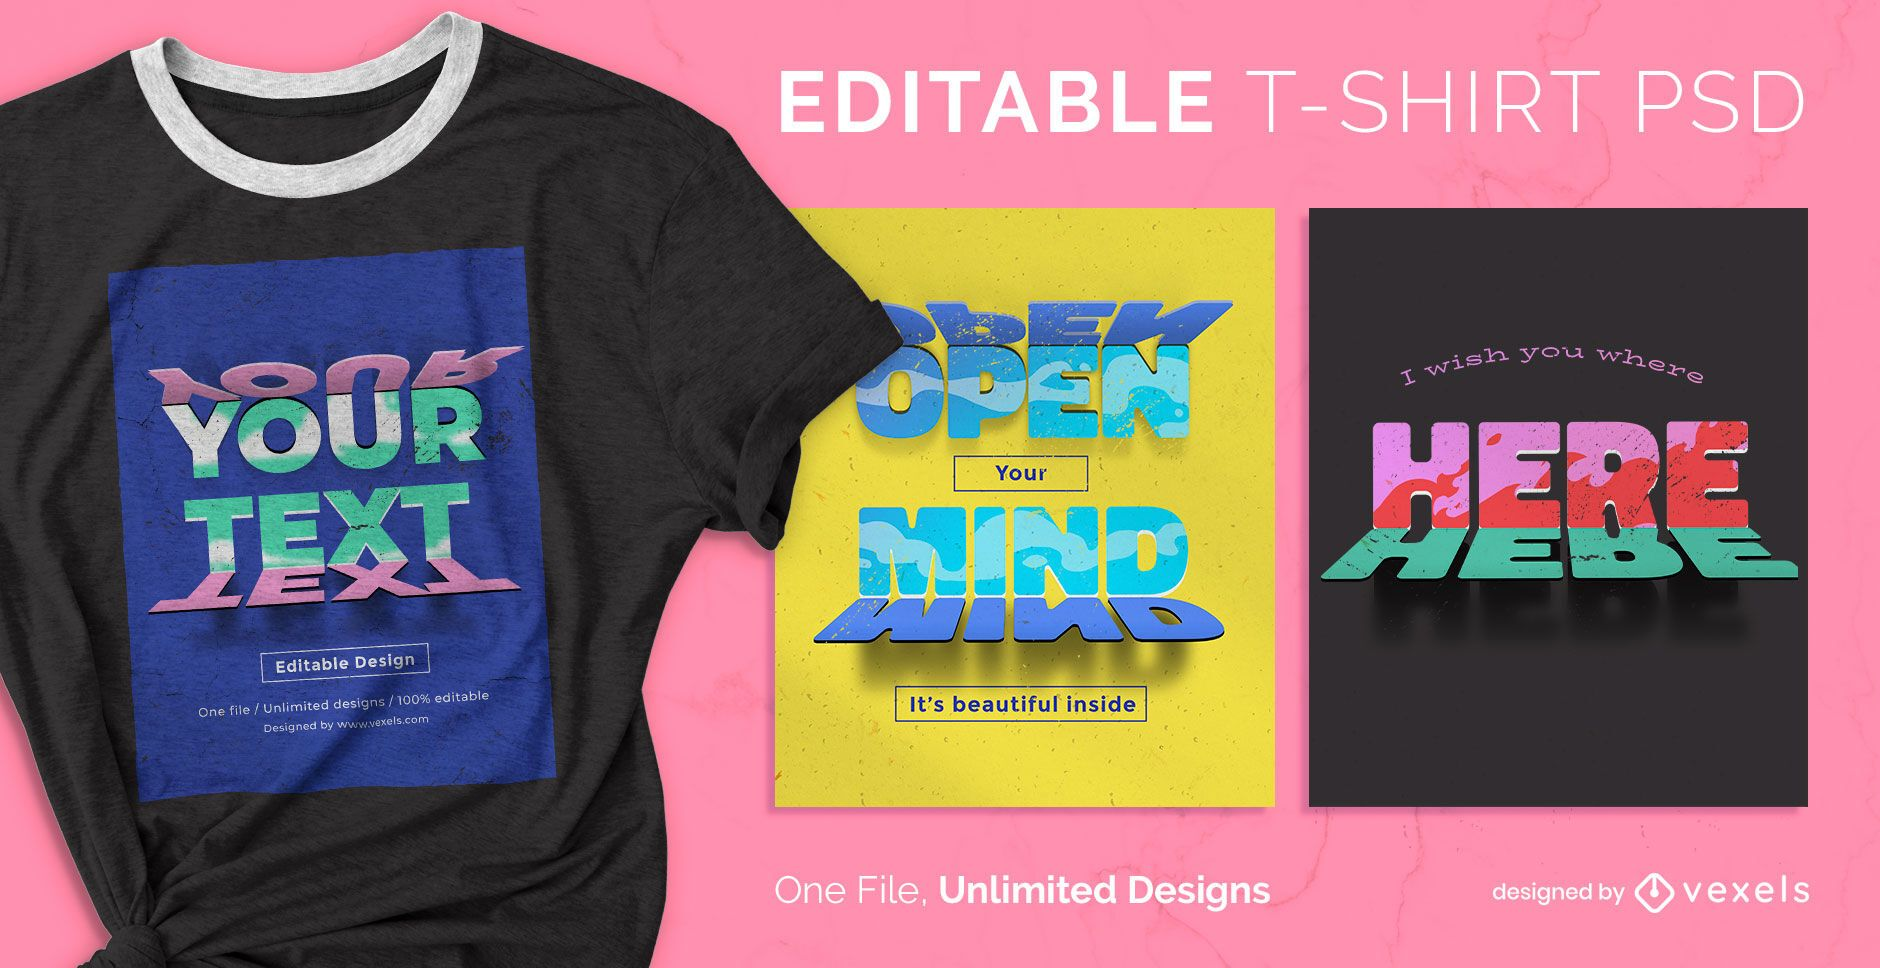 Mirrored text effect scalable t-shirt psd